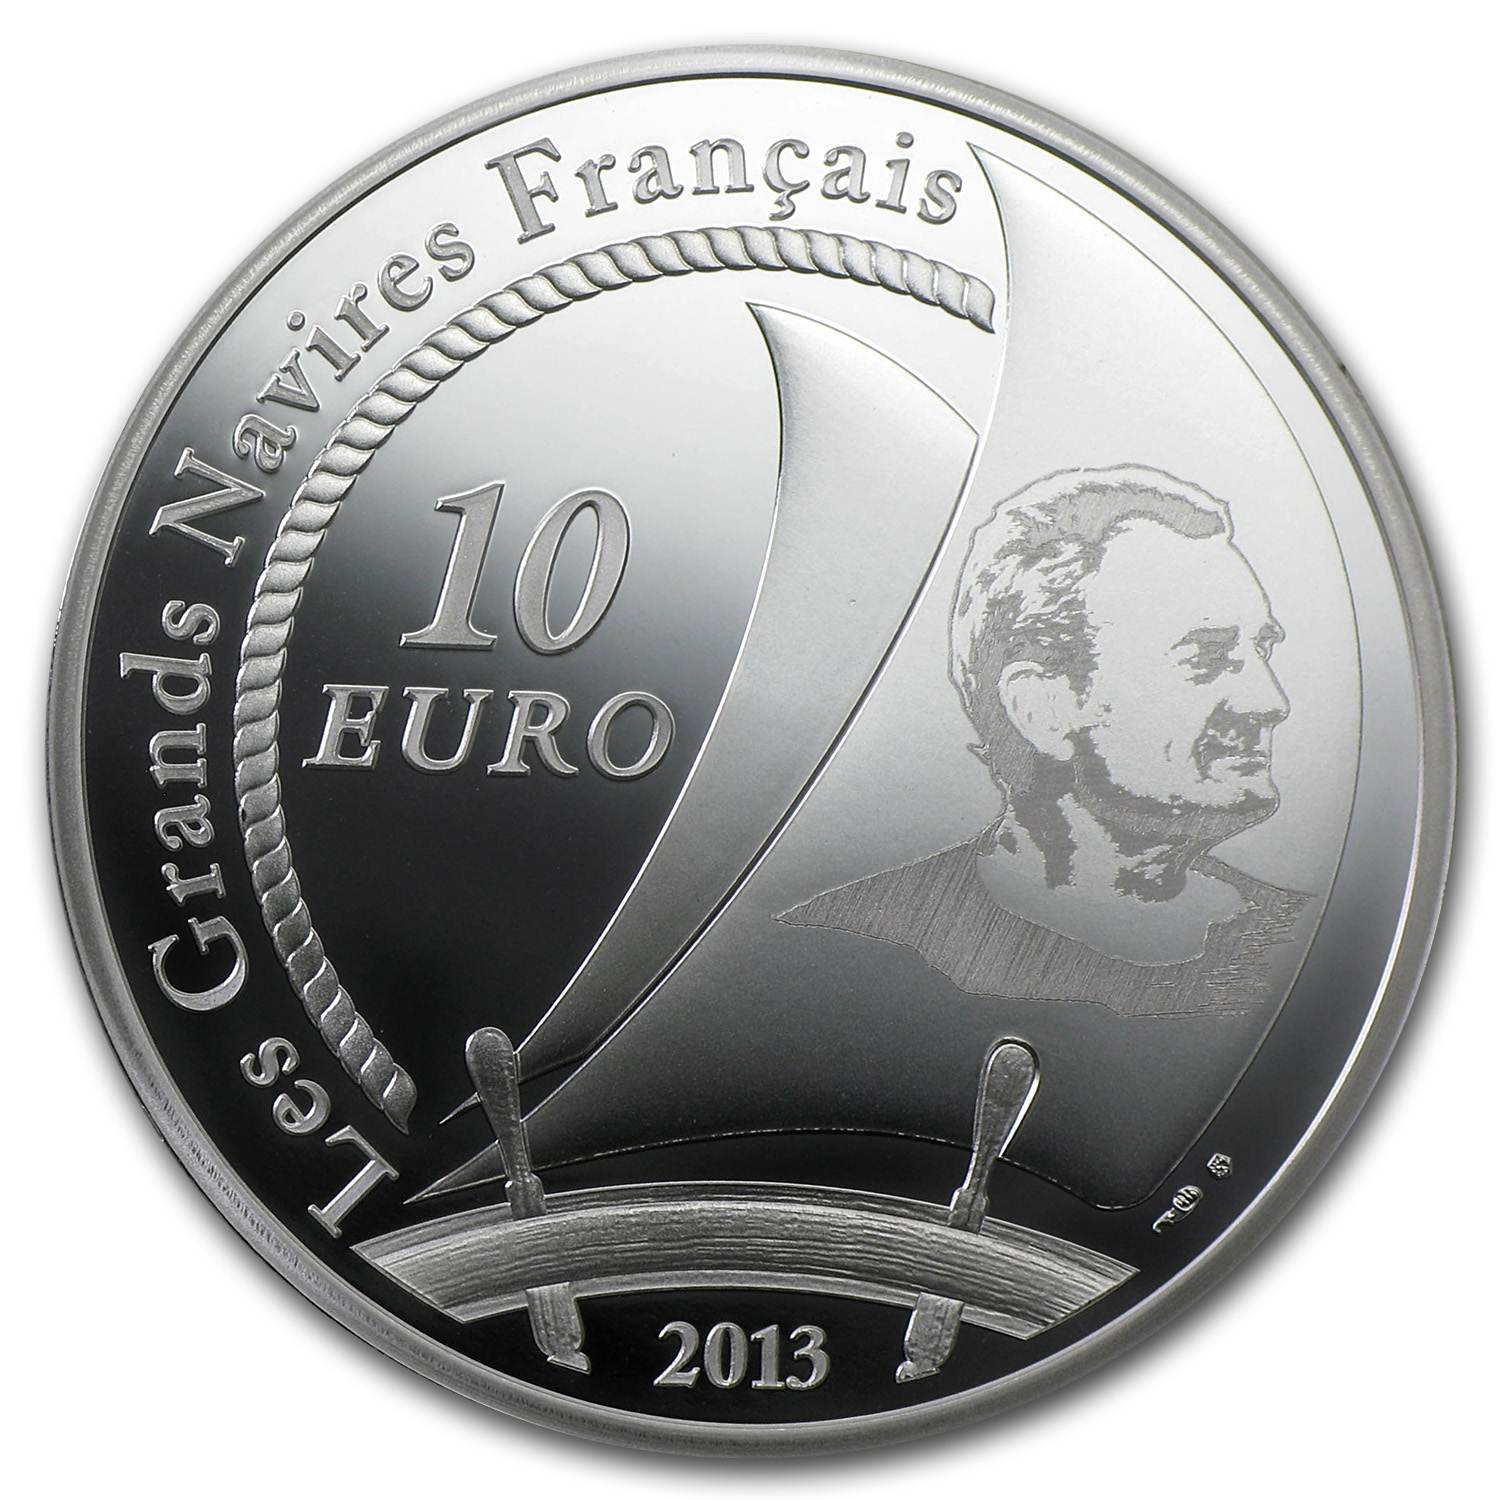 2013 €10 Silver Proof Great French Ships - Pen Duick